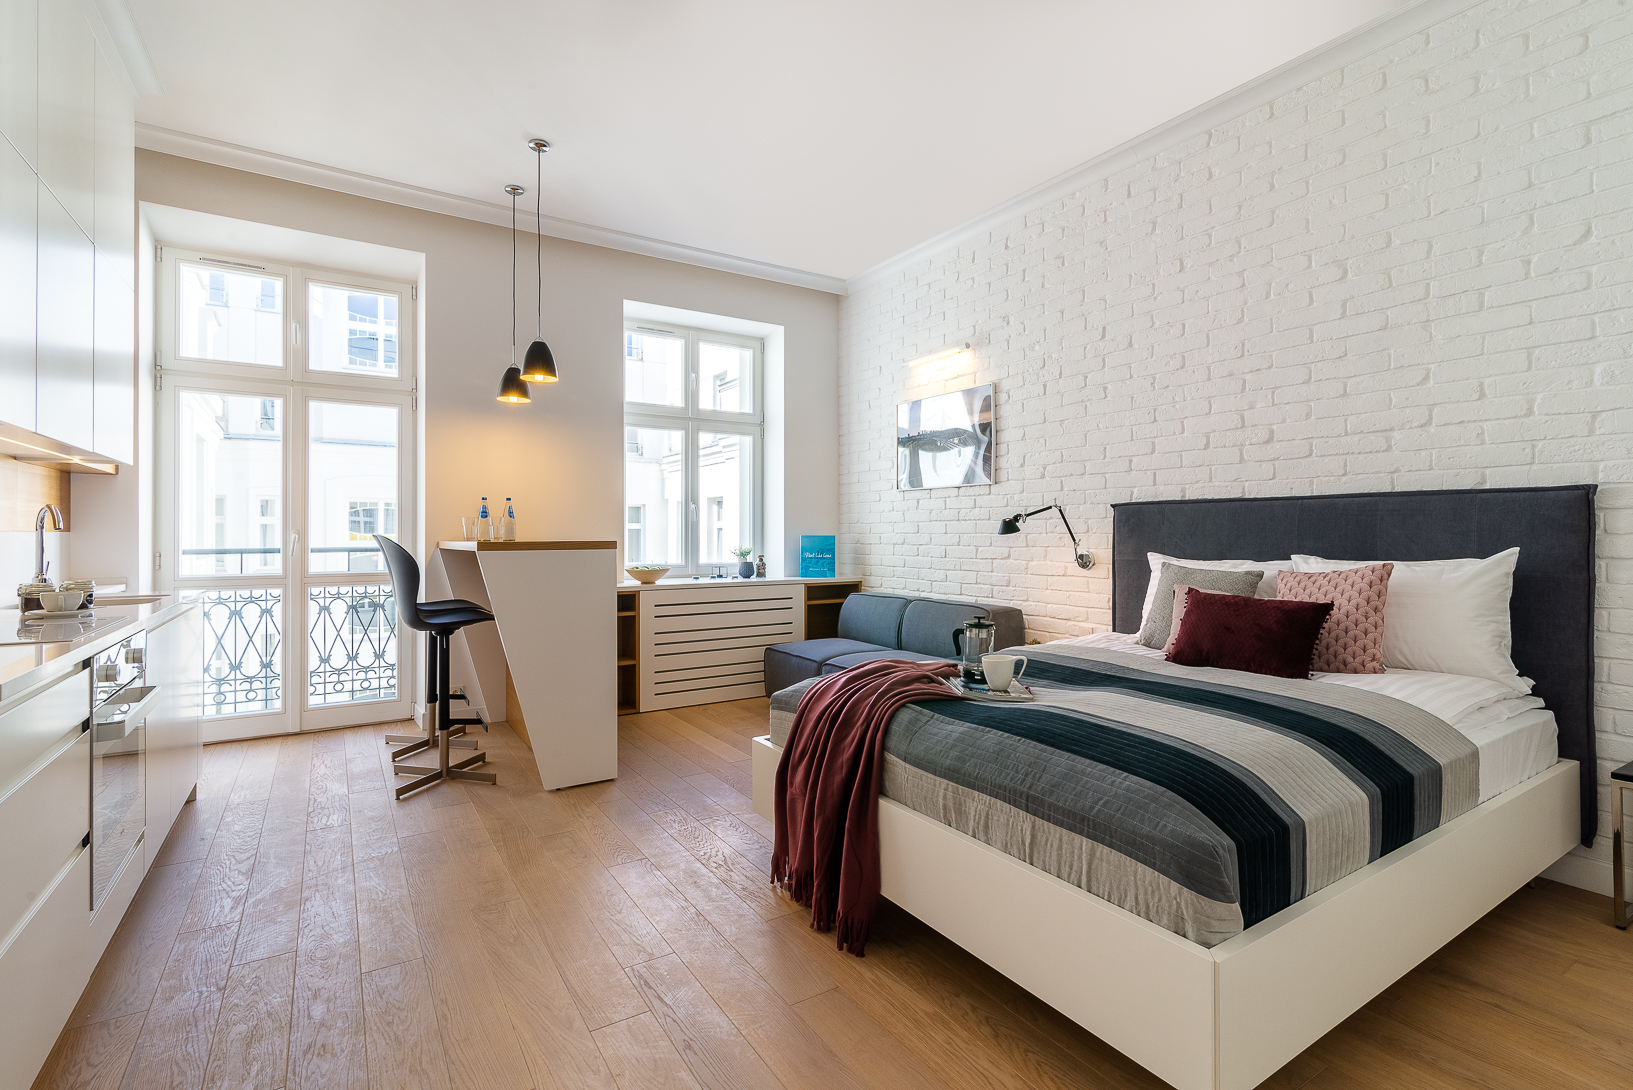 Double bed at Noakowskiego Apartments